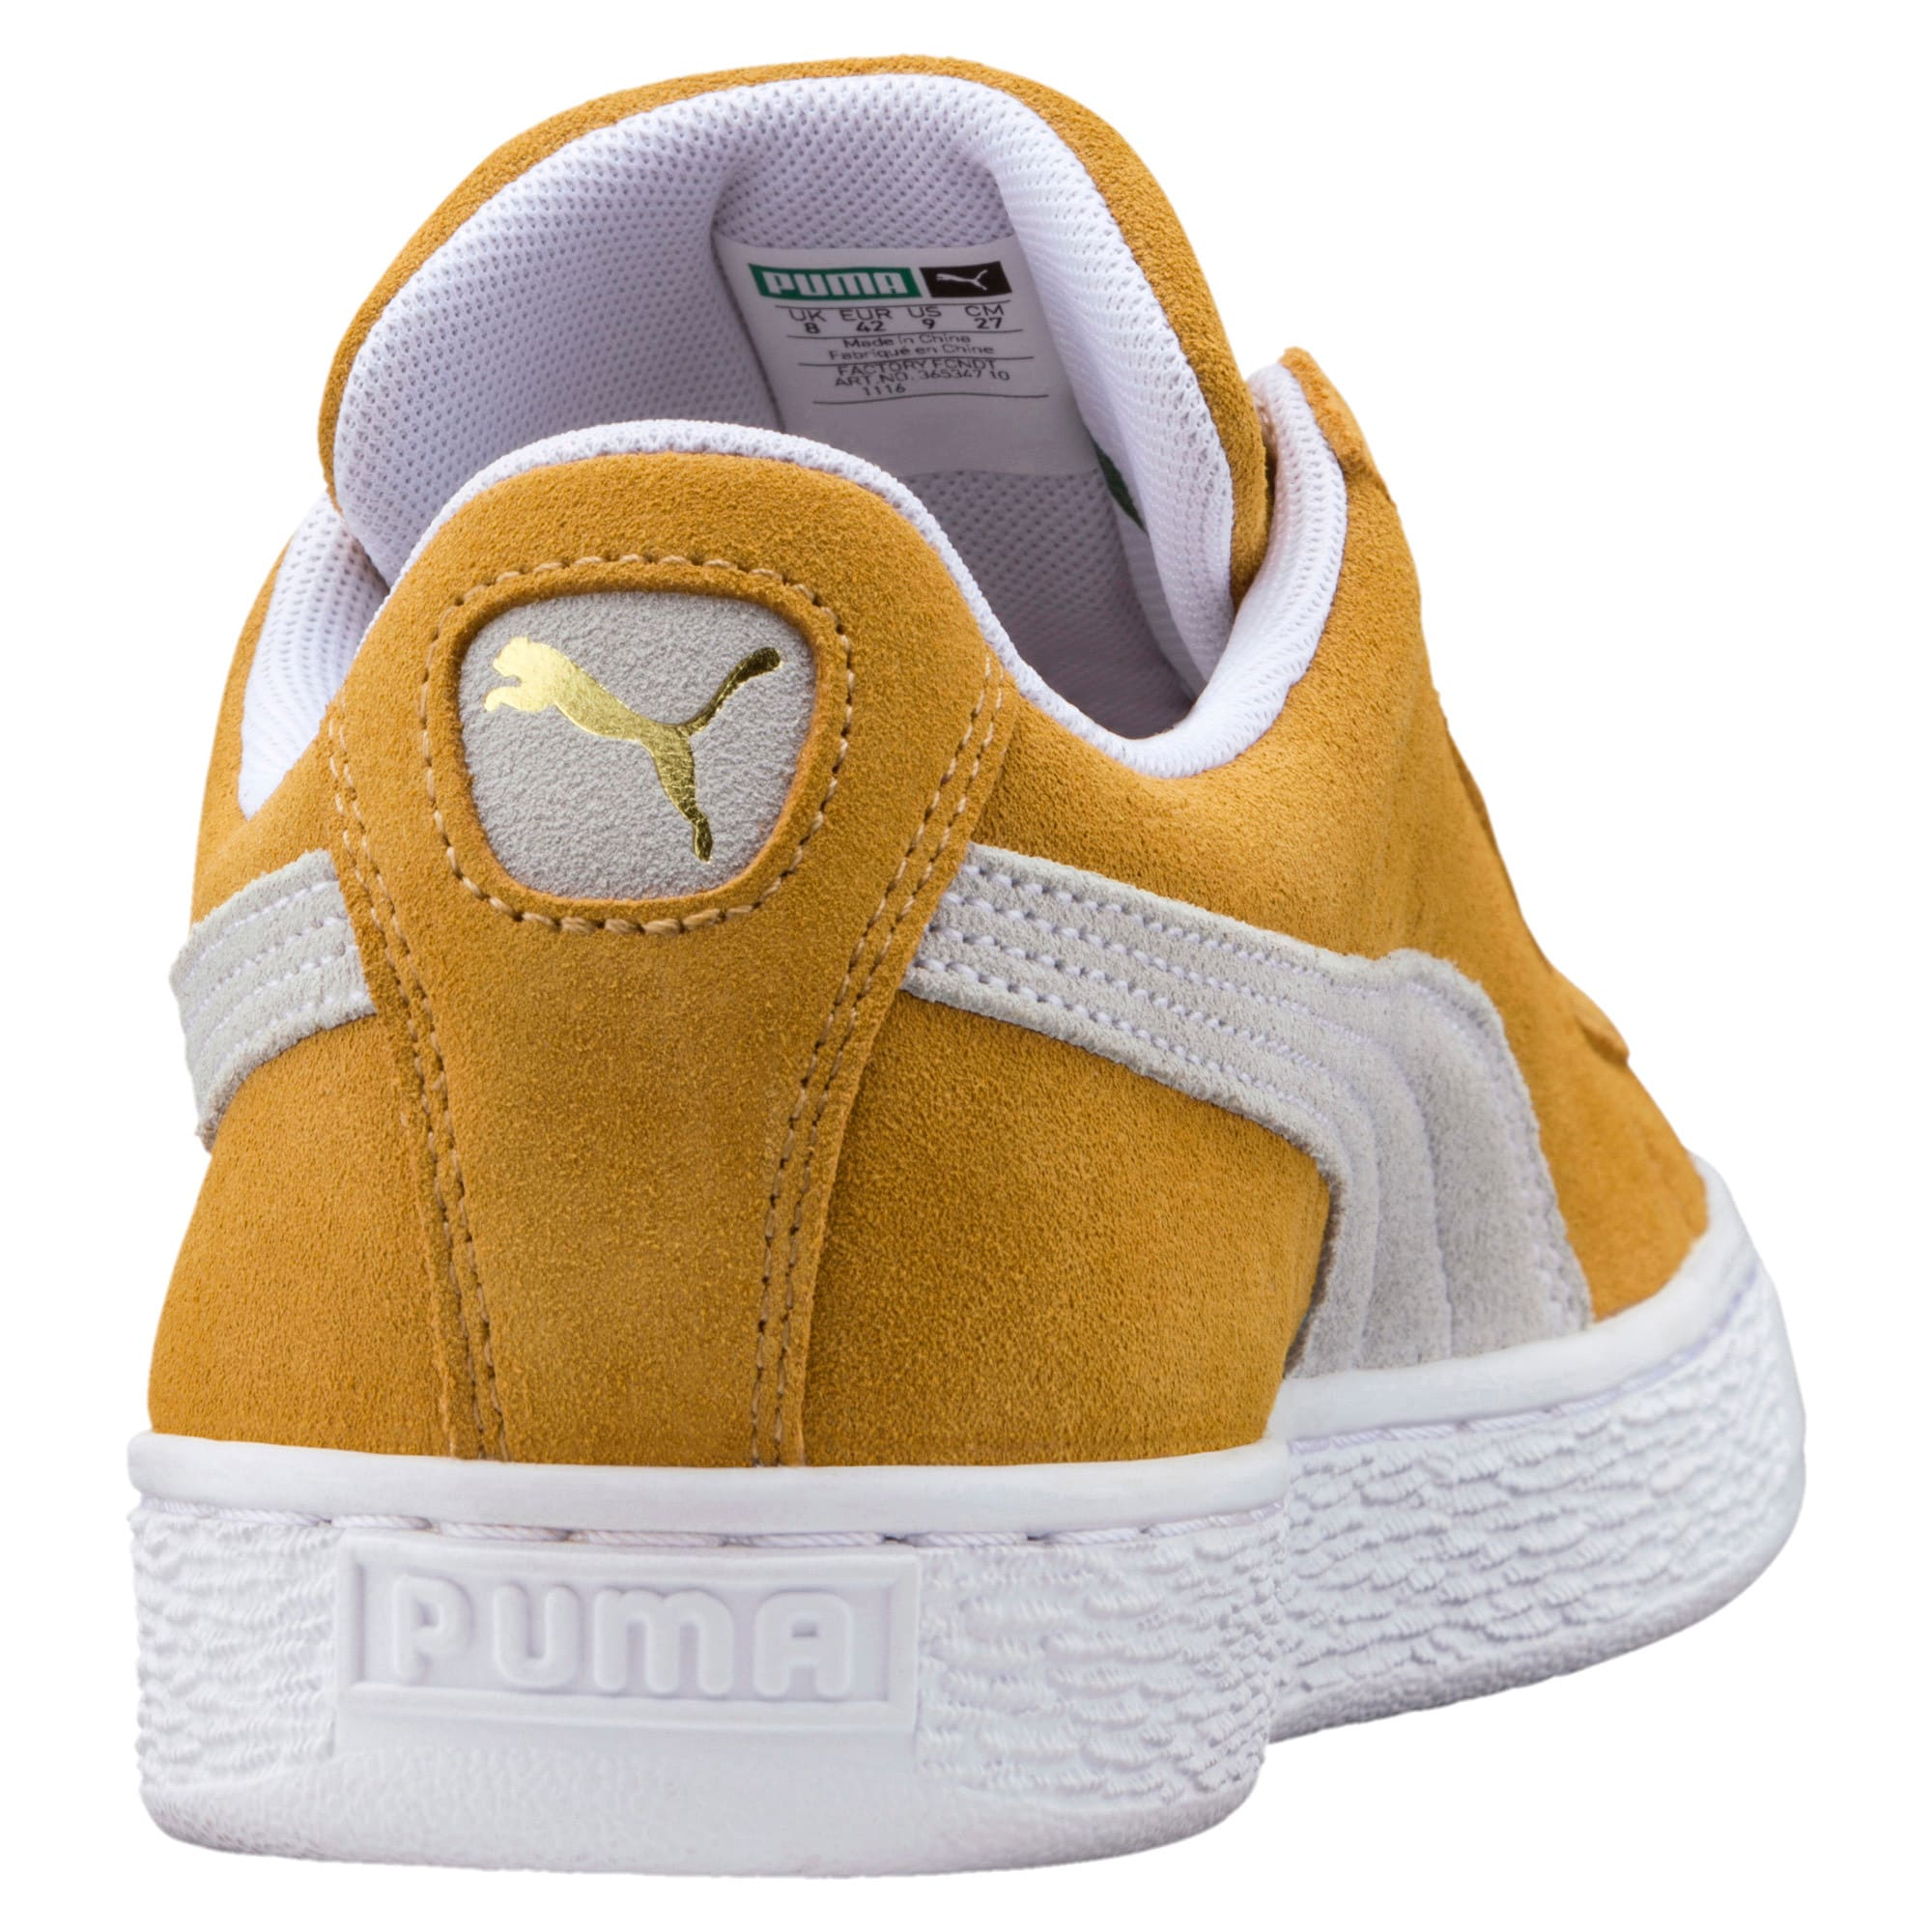 Thumbnail 4 of Suede Classic Trainers, Honey Mustard-Puma White, medium-IND